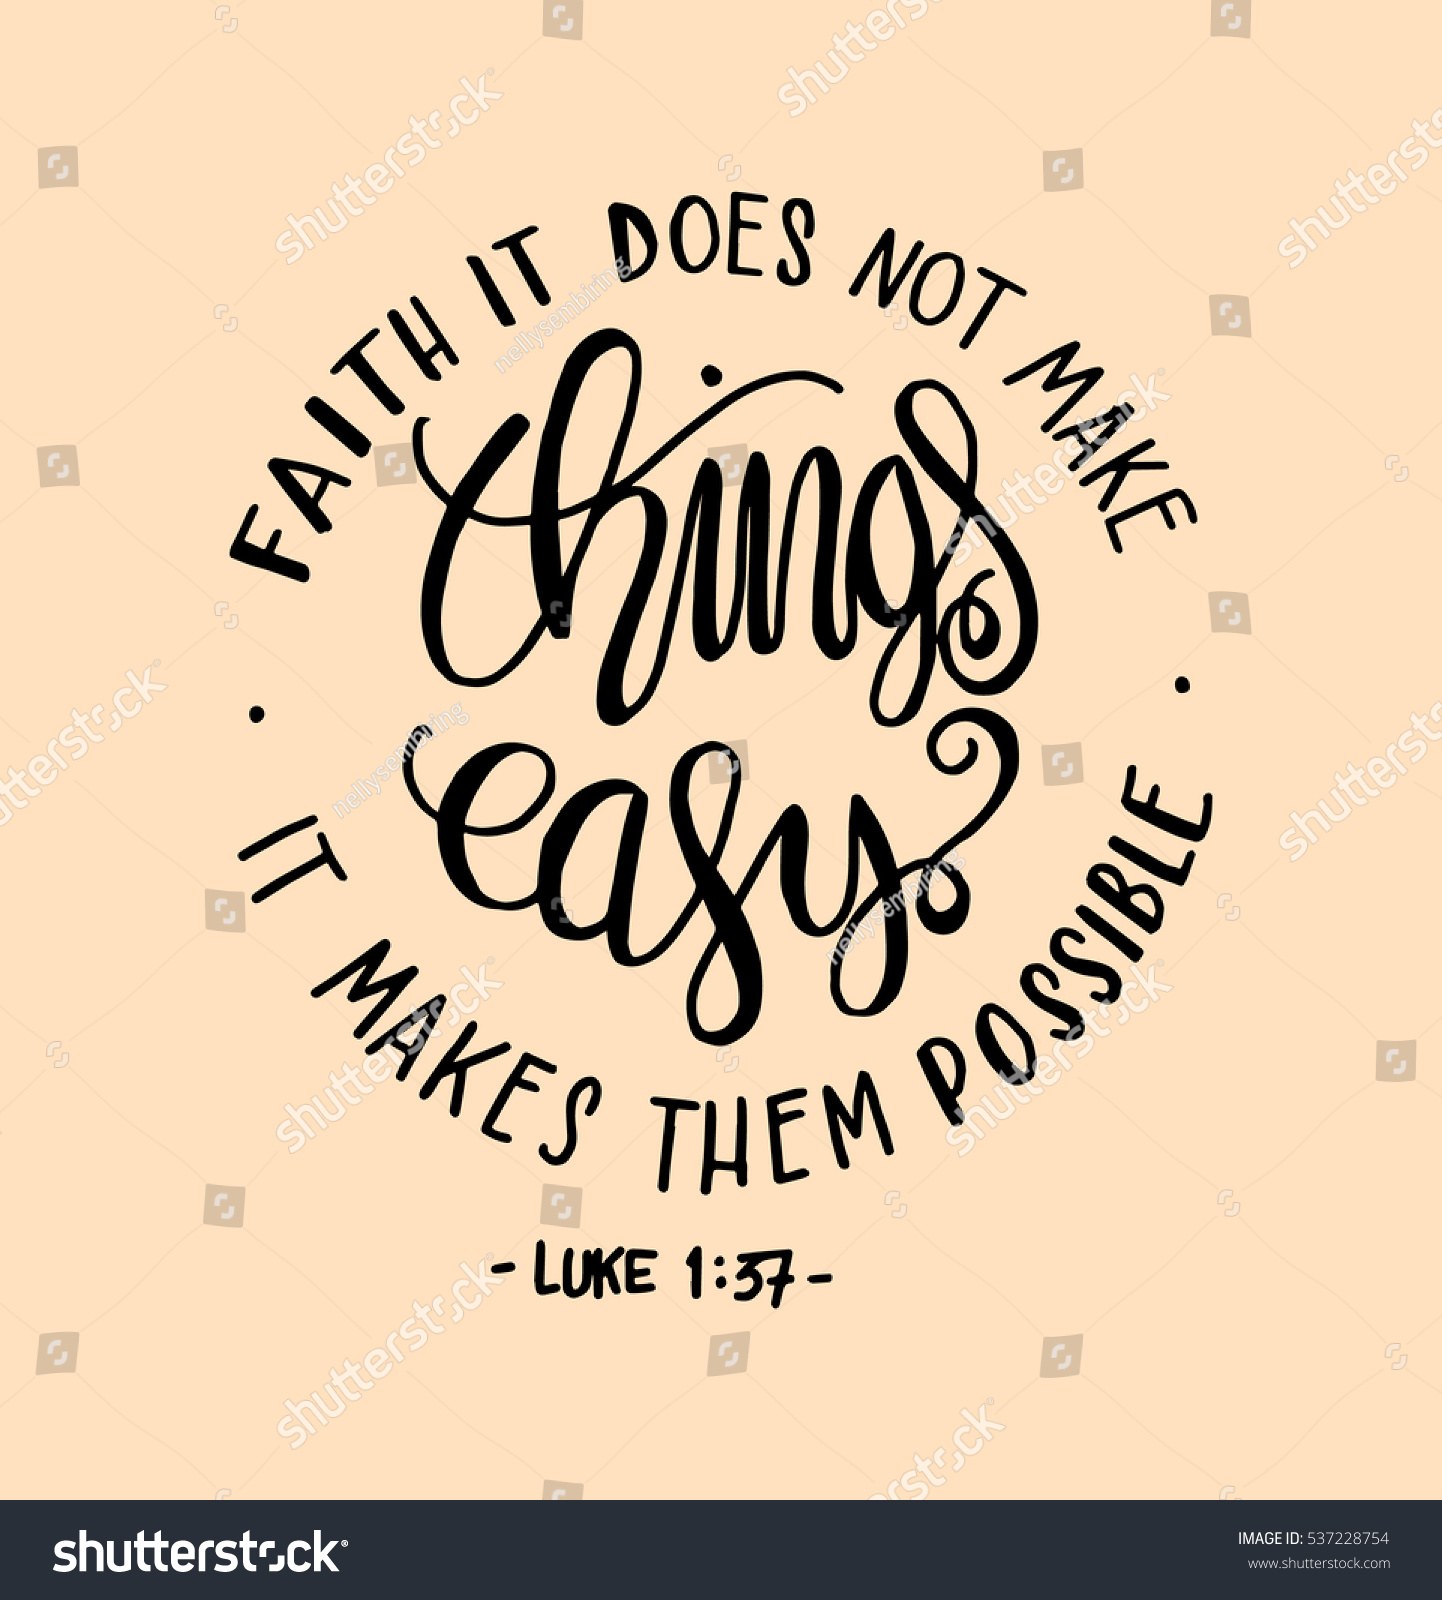 Faith does not make things easy stock vector